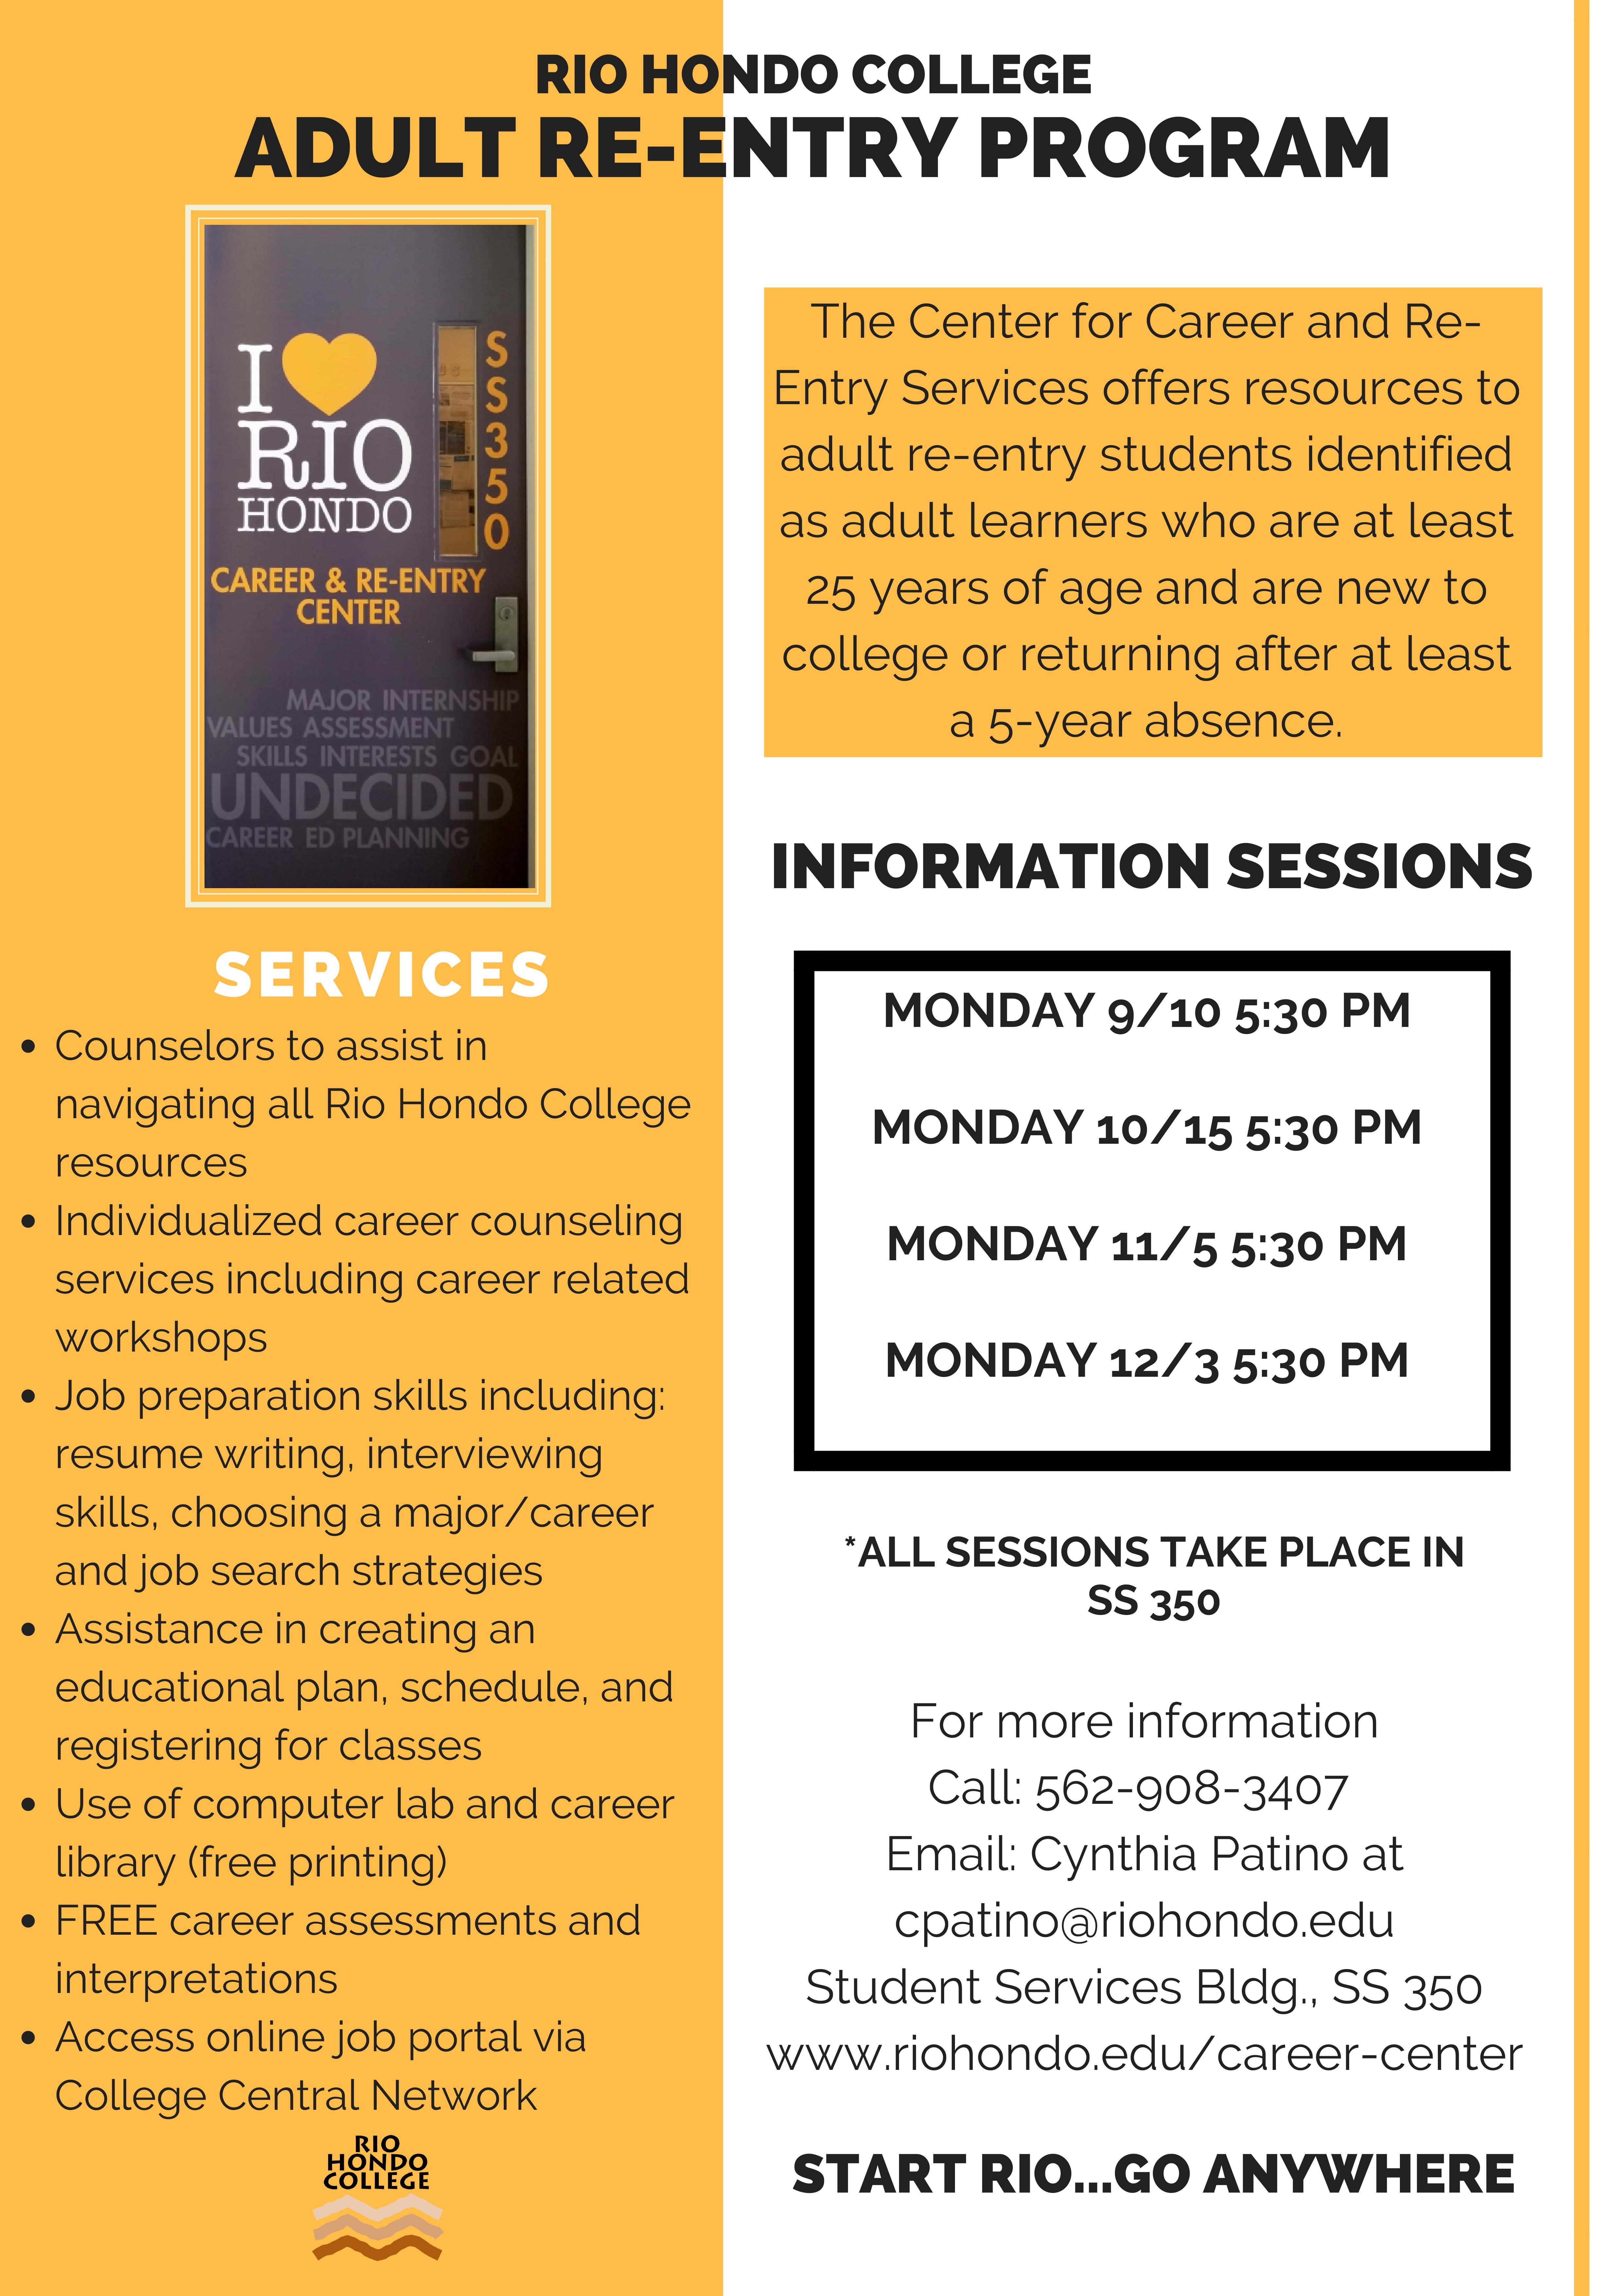 Adult Re-Entry Information Session @ Rio Hondo College  SS 350